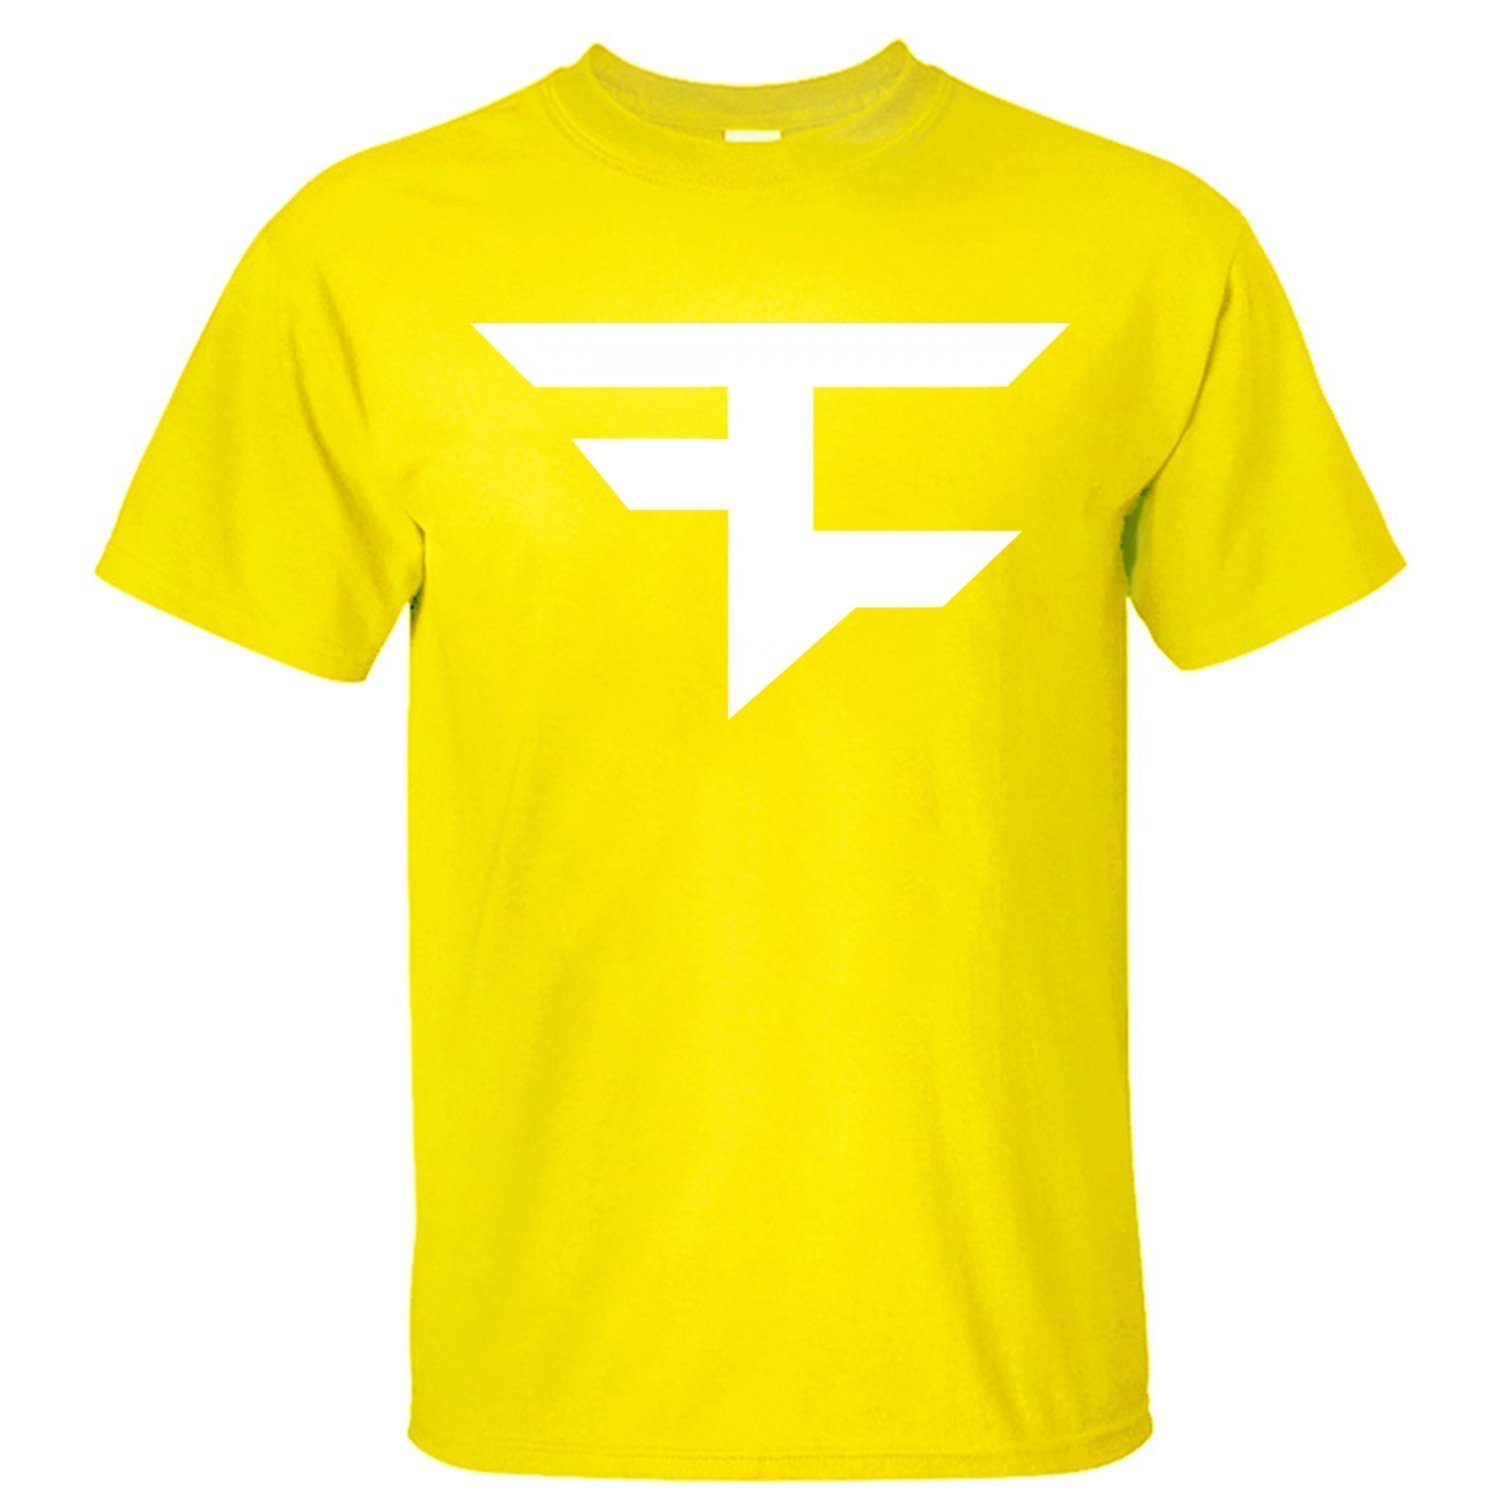 2dea086fa8e8 Amazon.com: XIXU Faze Clan Logo Men Custom T Shirt yellow S ...